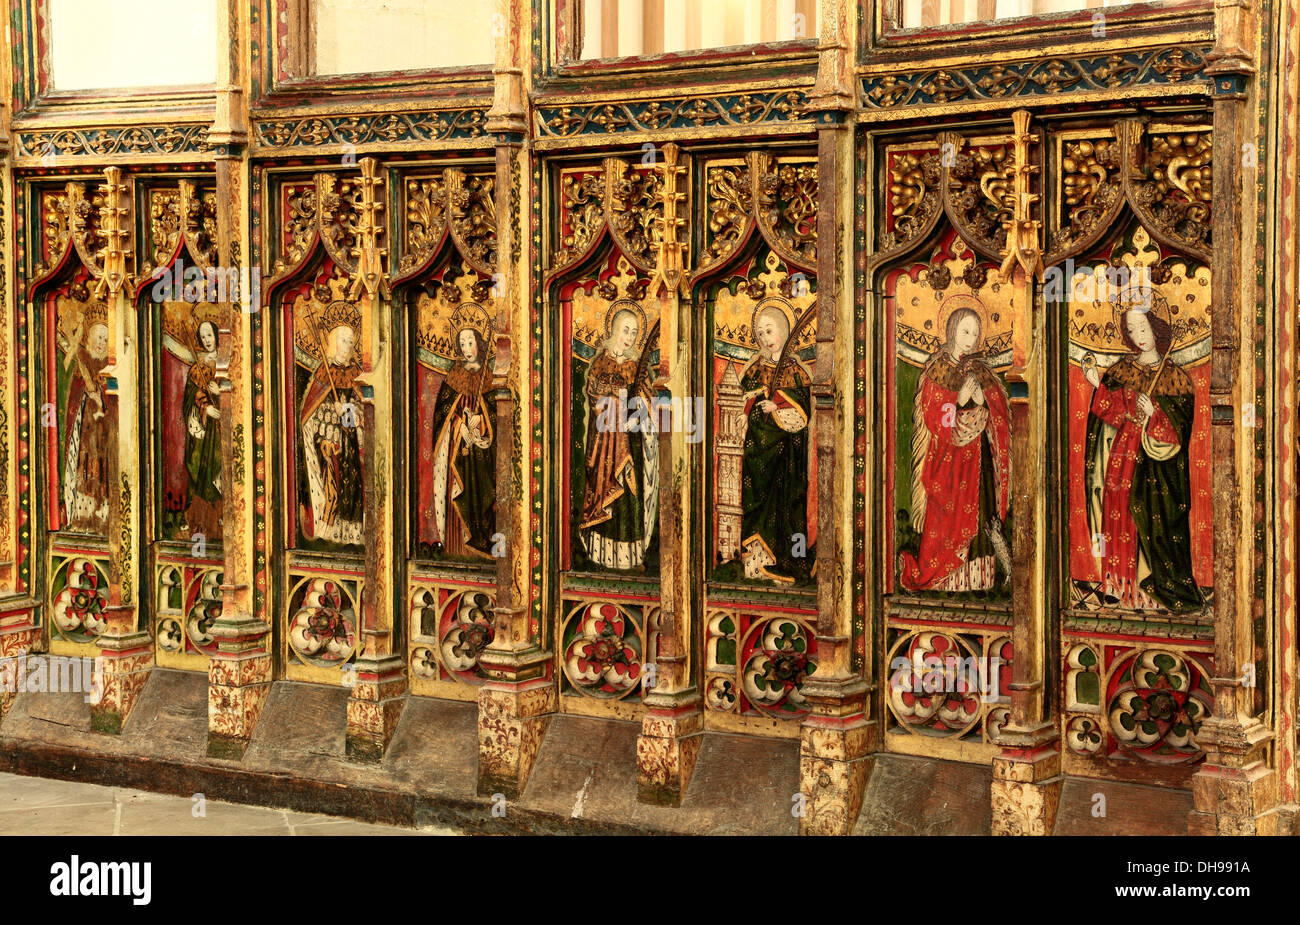 Eye, Suffolk, 15th century rood screen, north side, medieval painting paintings saint saints screens England UK - Stock Image